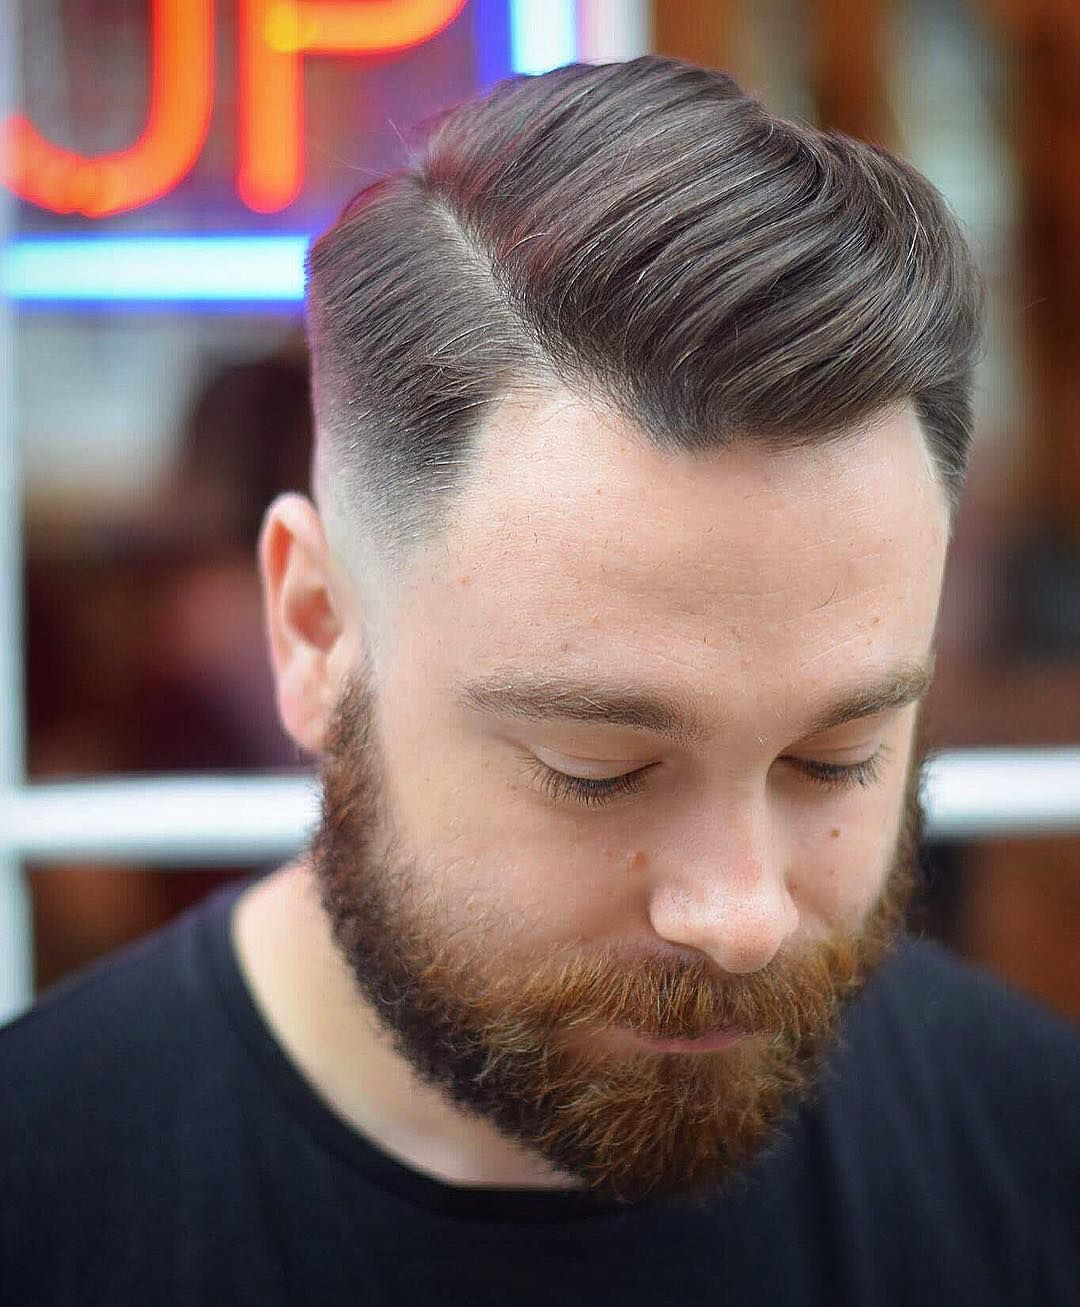 Superb Best Menu0027s Haircuts + Hairstyles For A Receding Hairline  Http://www.menshairstyletrends.com/best Mens Haircuts Hairstyles For A  Receding Hairline/